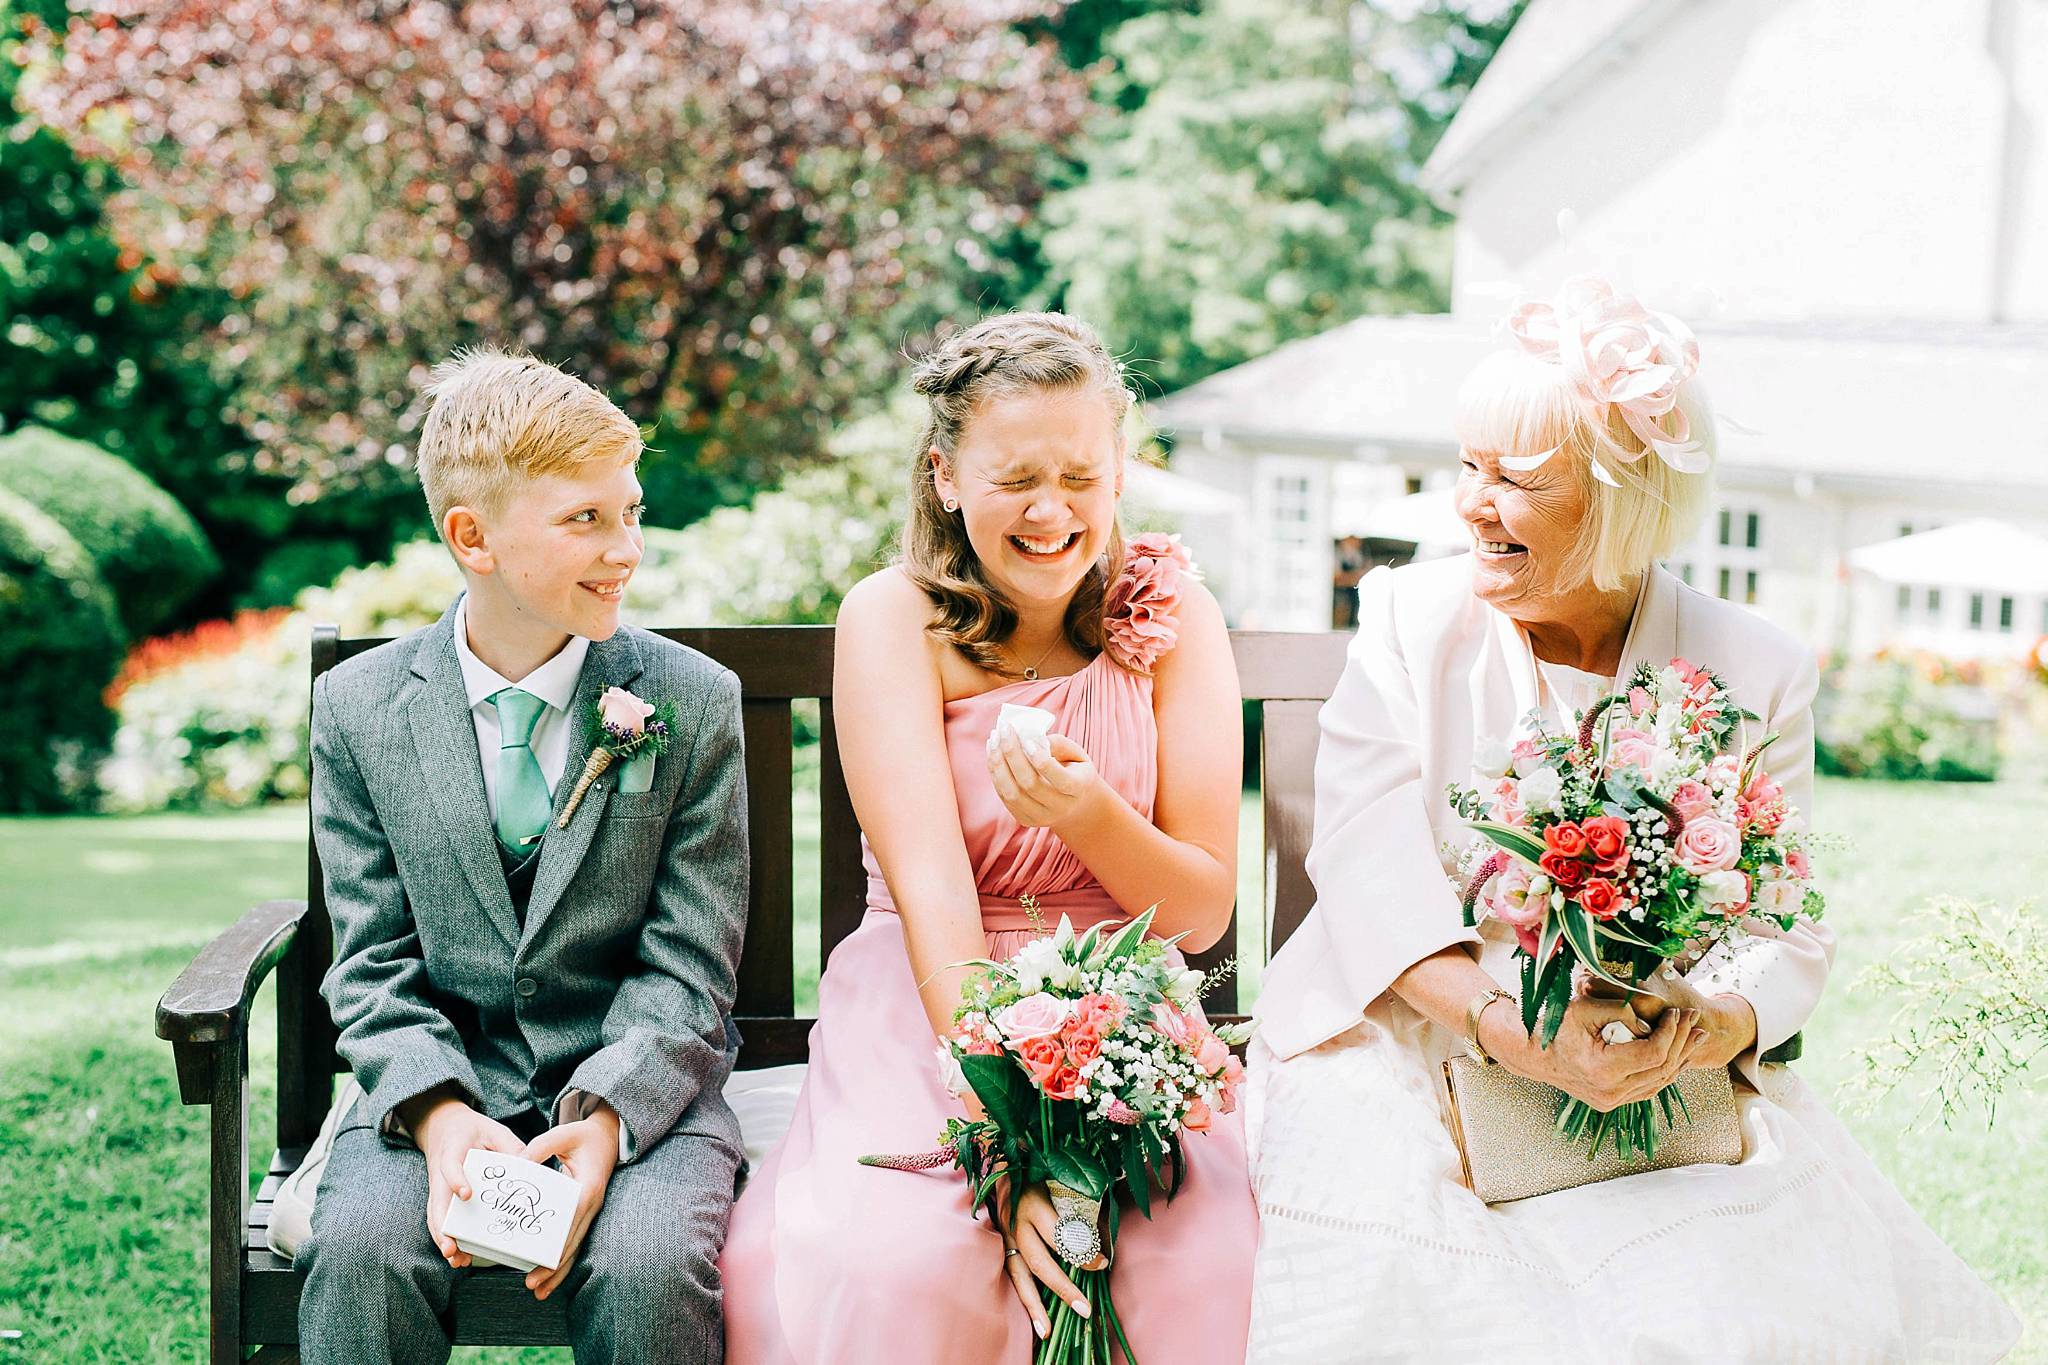 Natural wedding photography Manchester - Clare Robinson Photography_0002.jpg